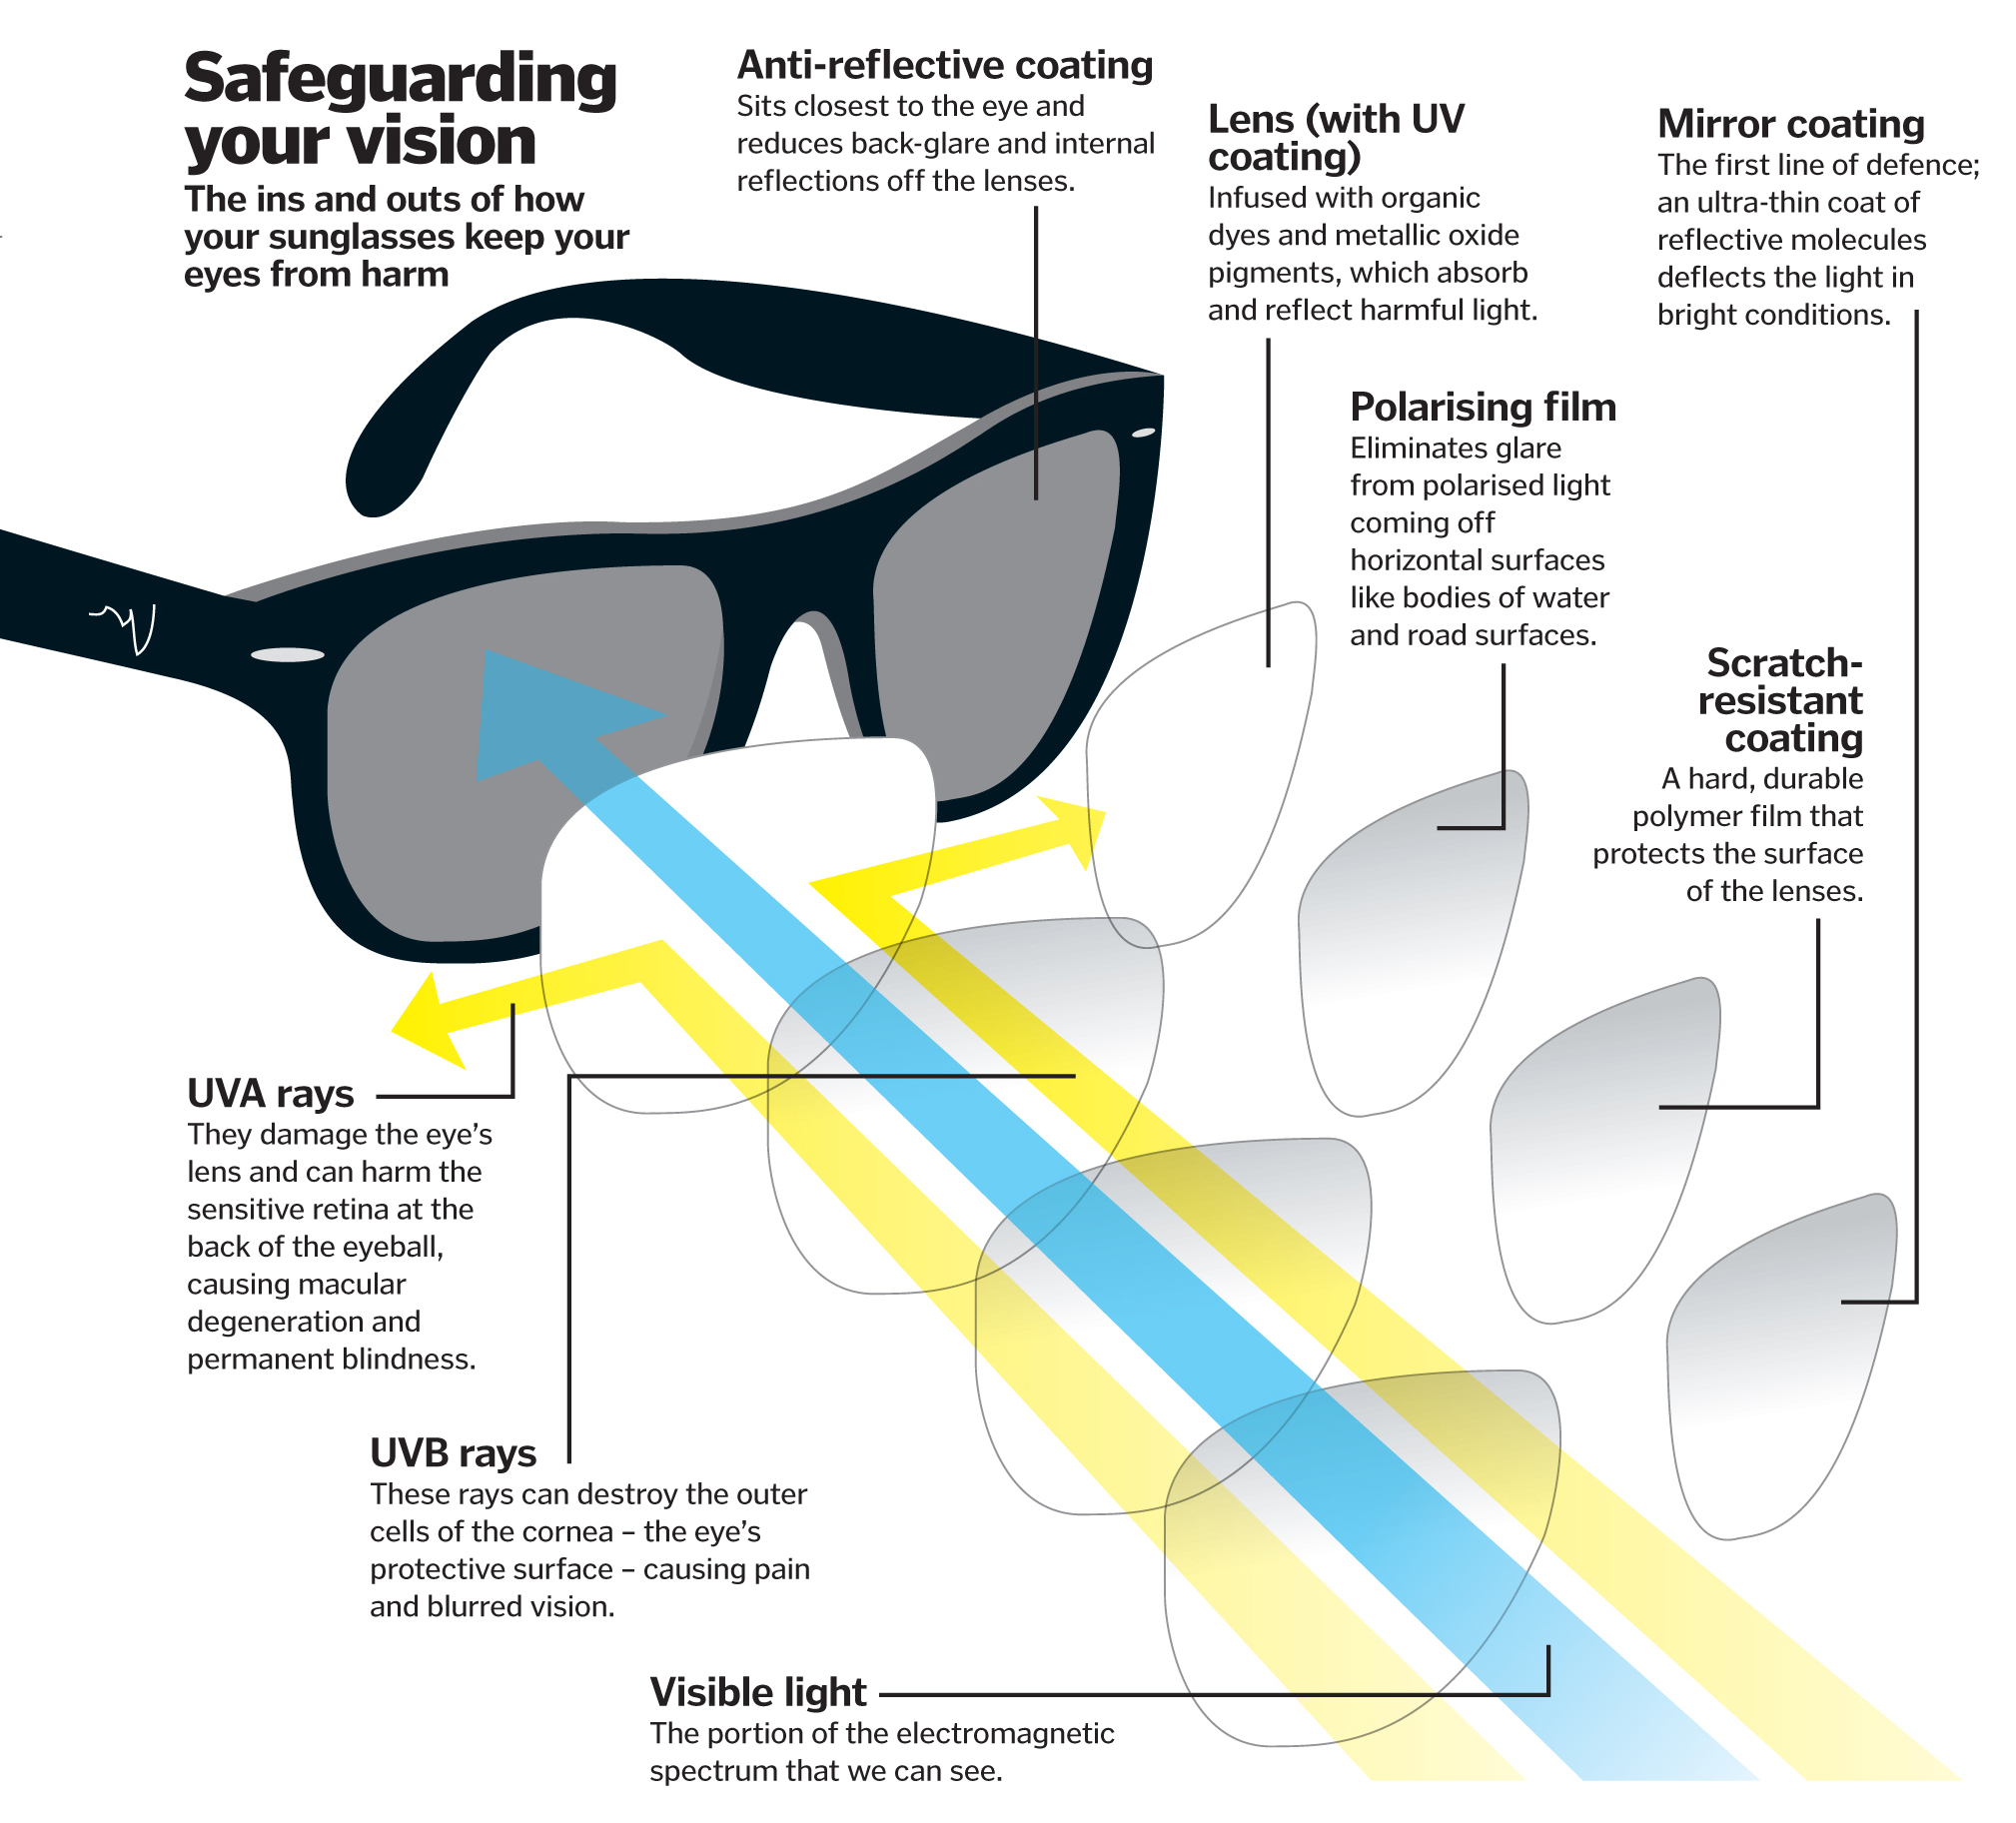 aaf46b00bc8 Sunglasses diagram. How sunglasses protect your vision